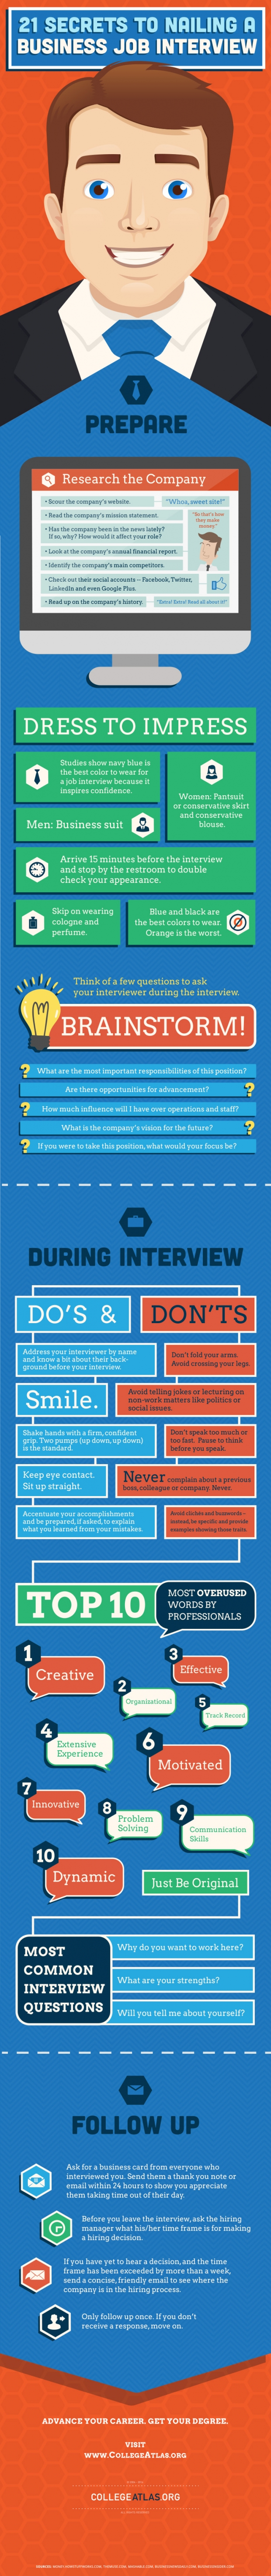 business-interview-infographic